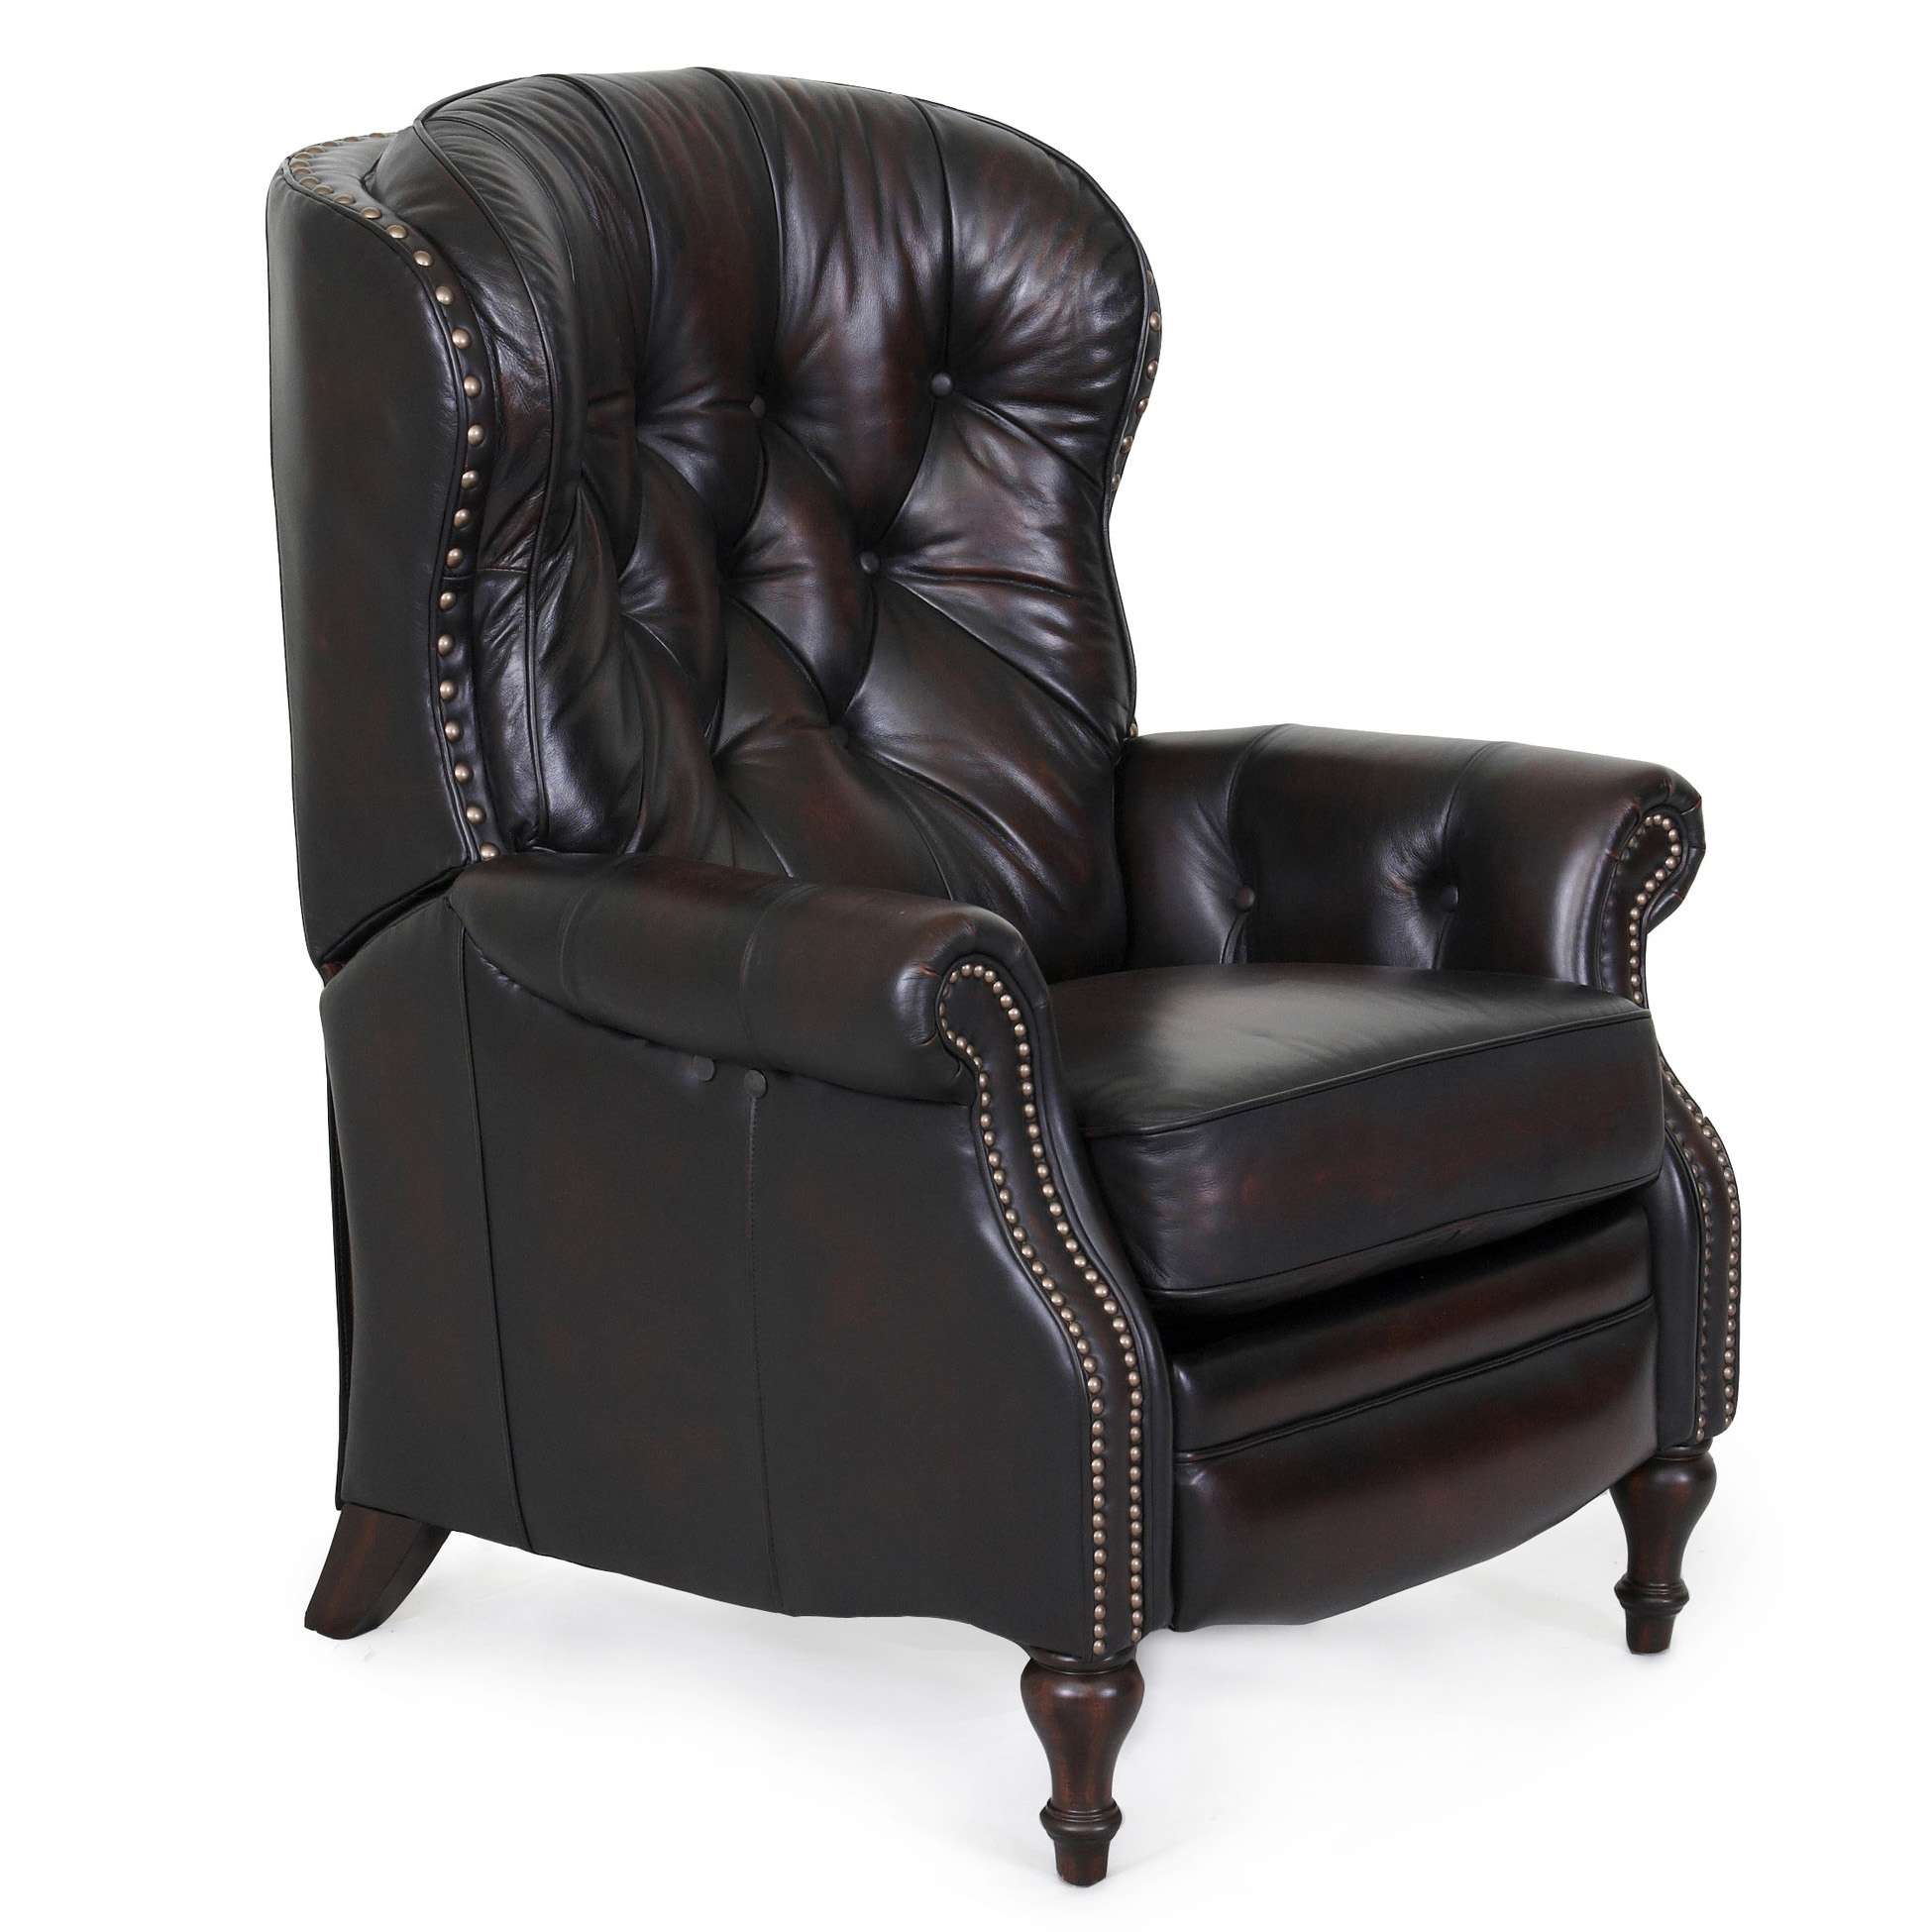 Barcalounger Kendall Ii Recliner Chair Leather Recliner